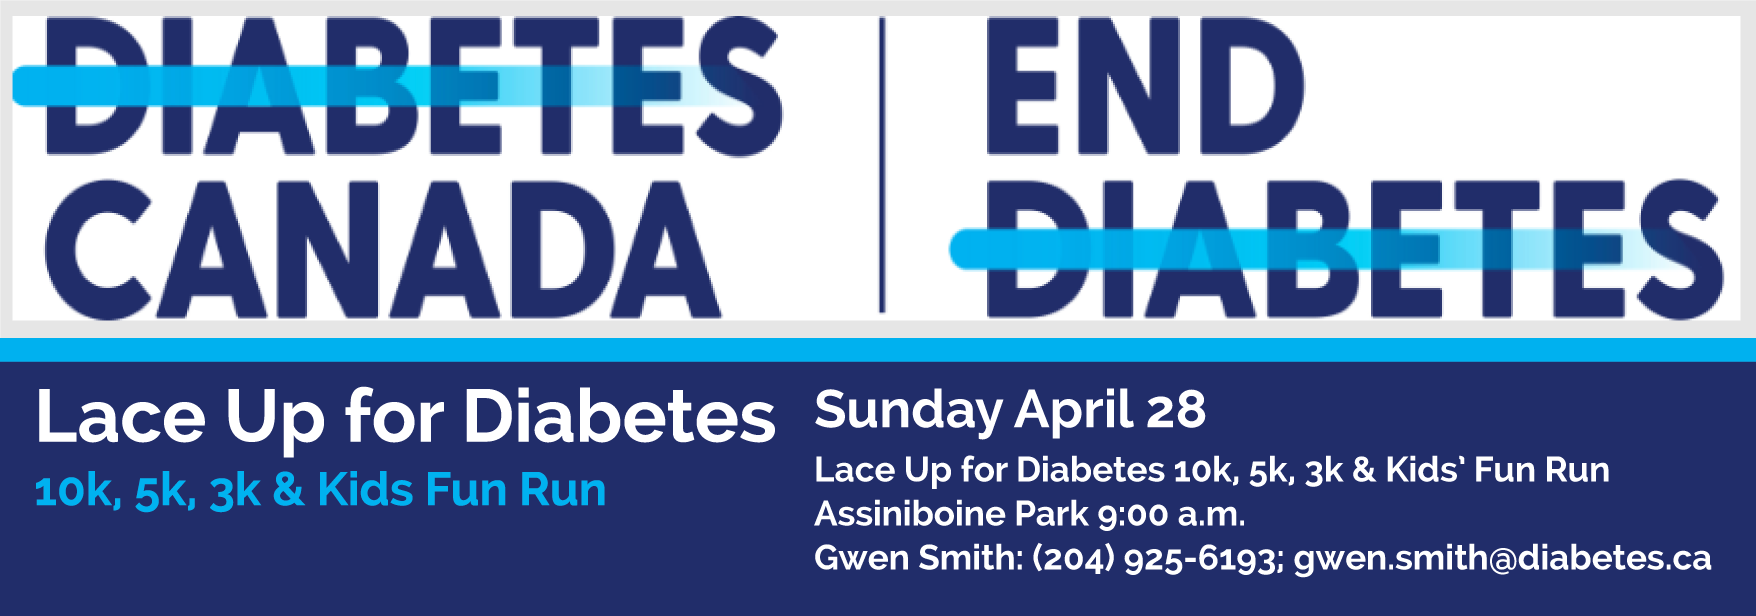 http://mraweb.ca/events/lace-up-for-diabetes/